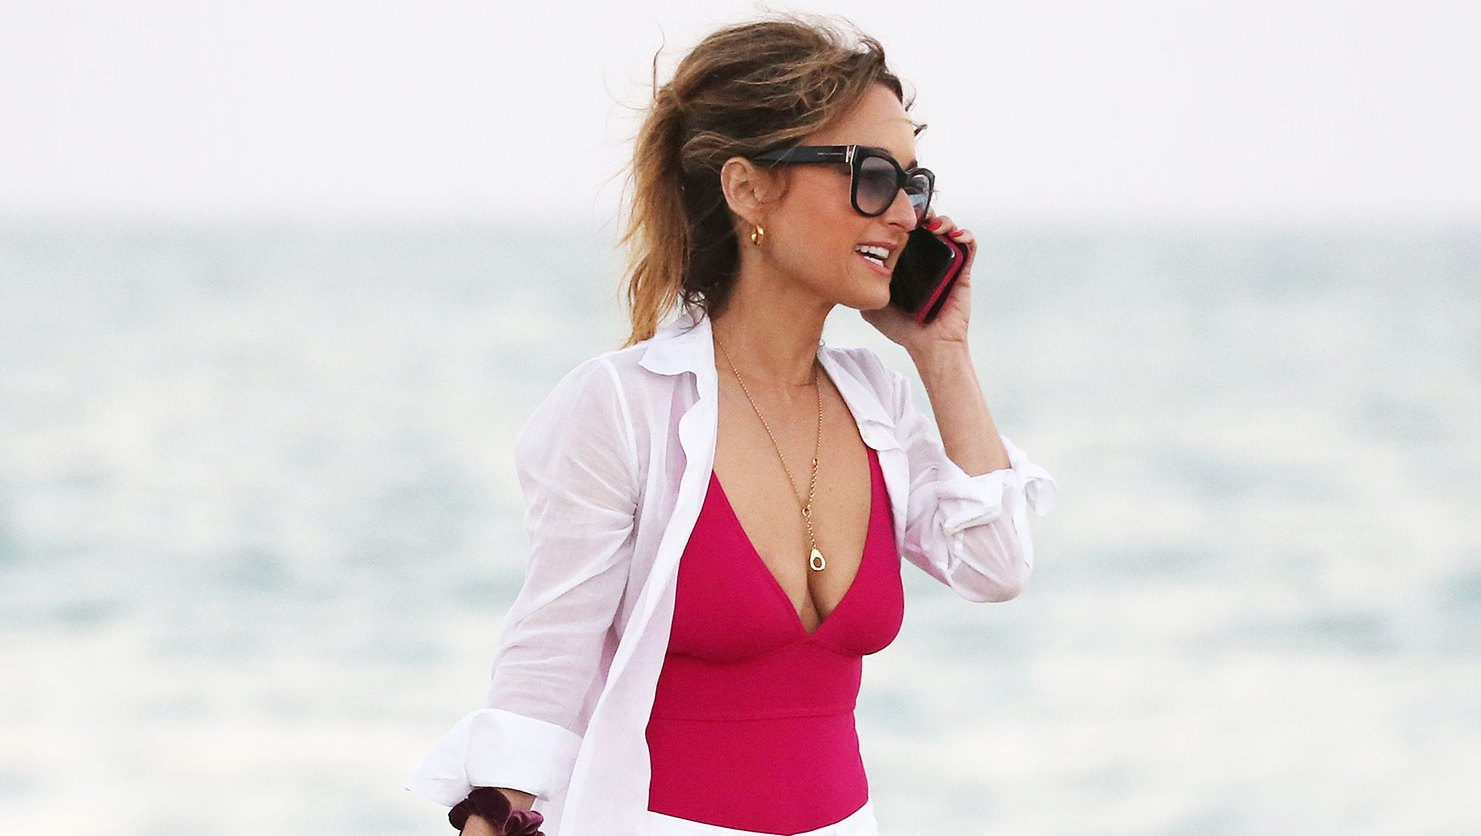 Giada De Laurentiis, 48, Is Latest Star Over 40 to Slay on the Beach